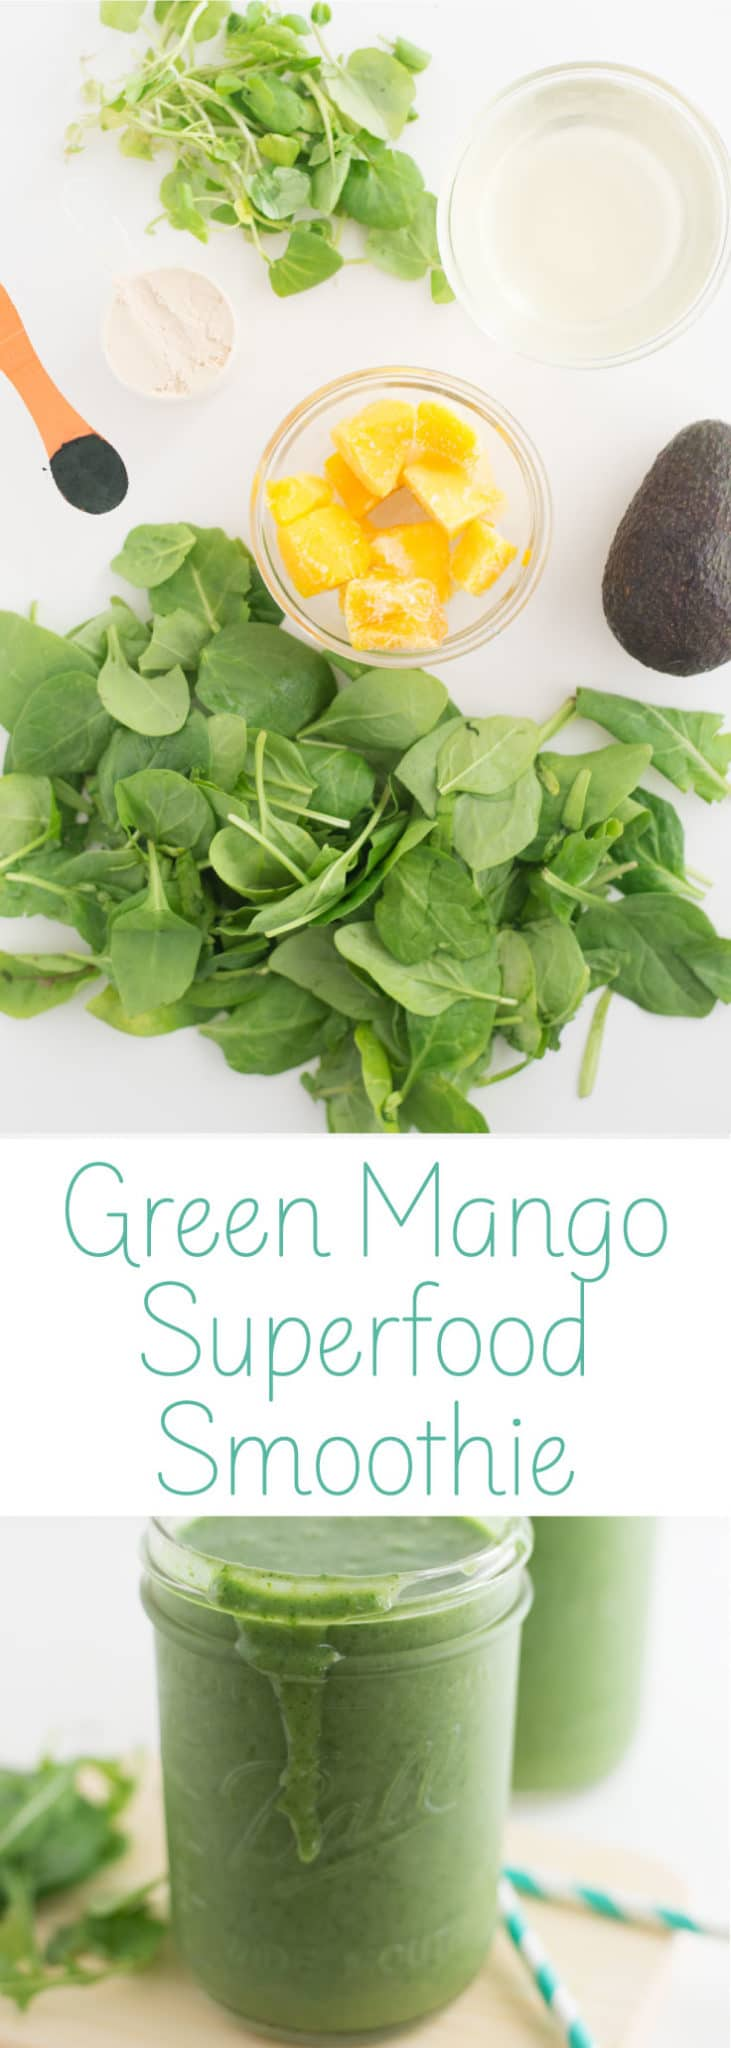 Green Superfood Smoothie -- Throw all the ingredients in your blender for an easy vegan breakfast or snack. #greensmoothie #vegan #healthy #cleaneating #smoothierecipes - mindfulavocado